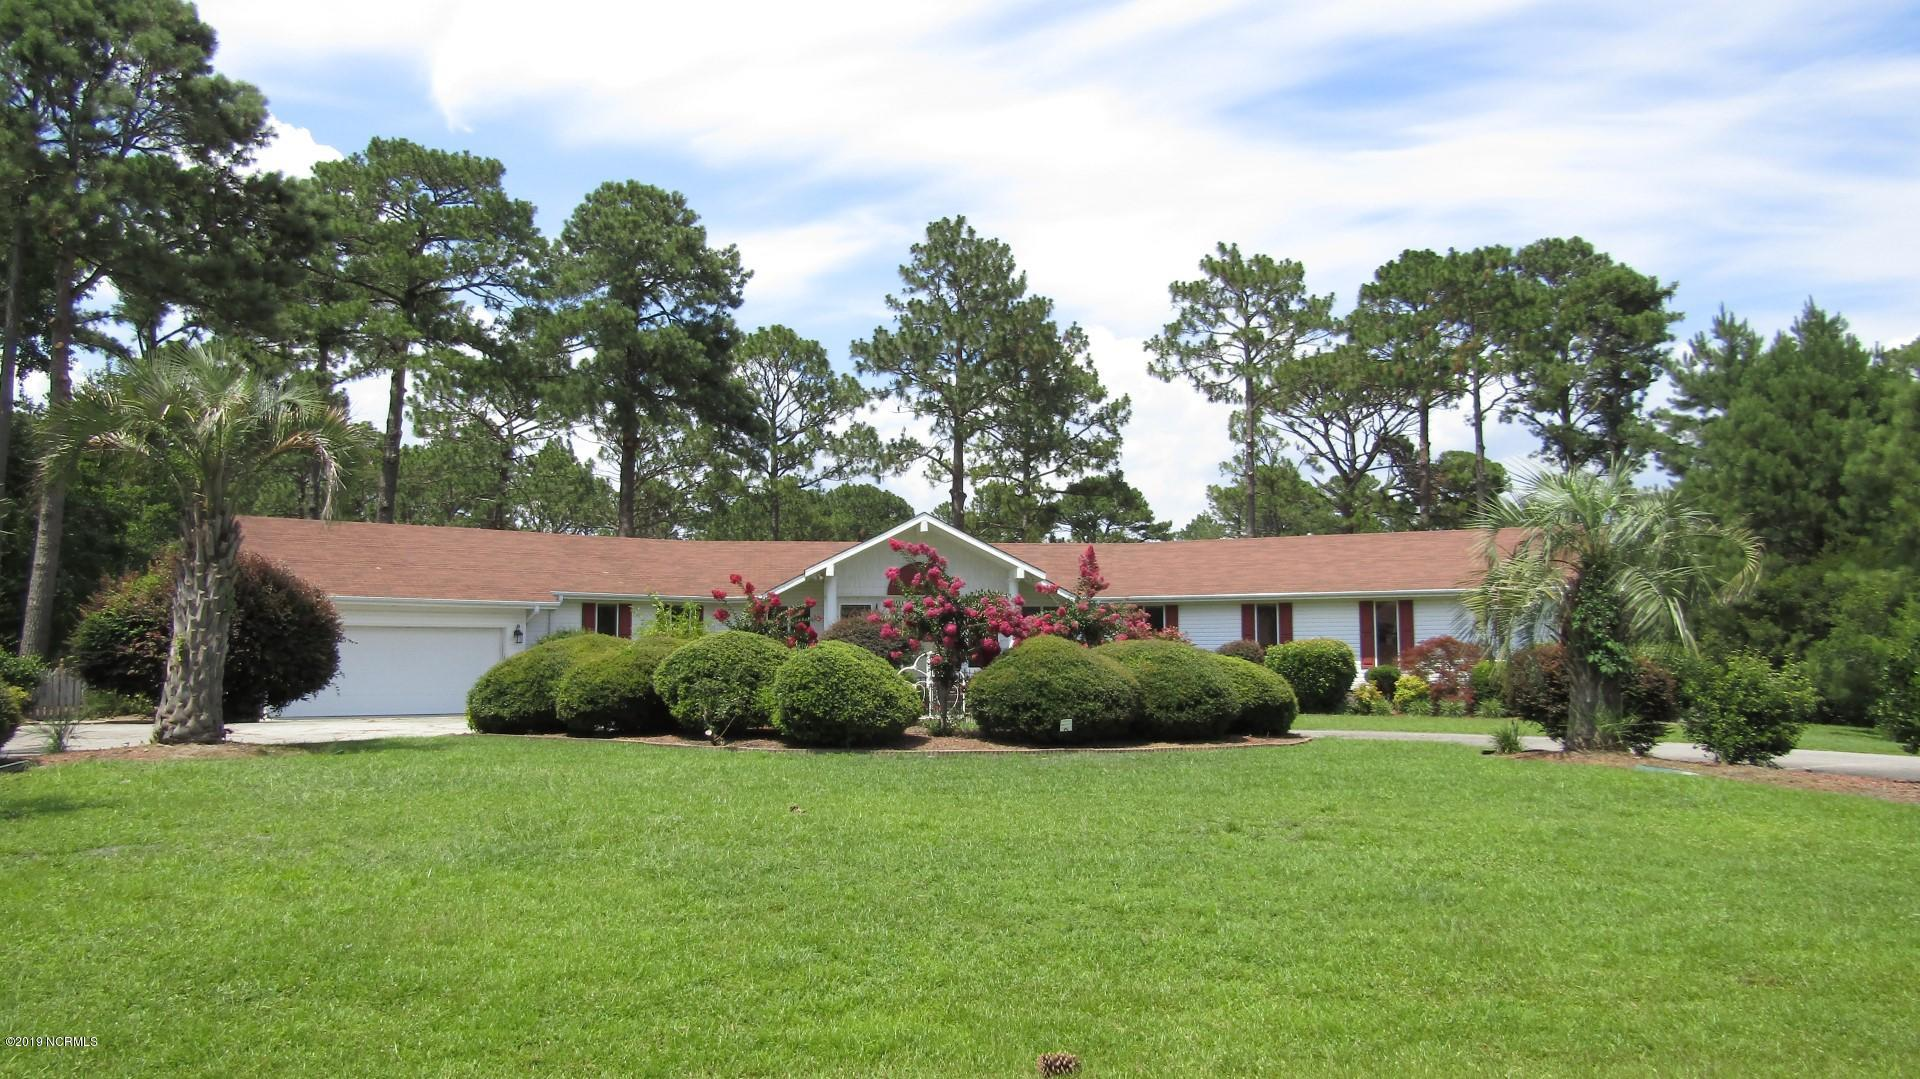 10 Brierwood Road Shallotte, NC 28470